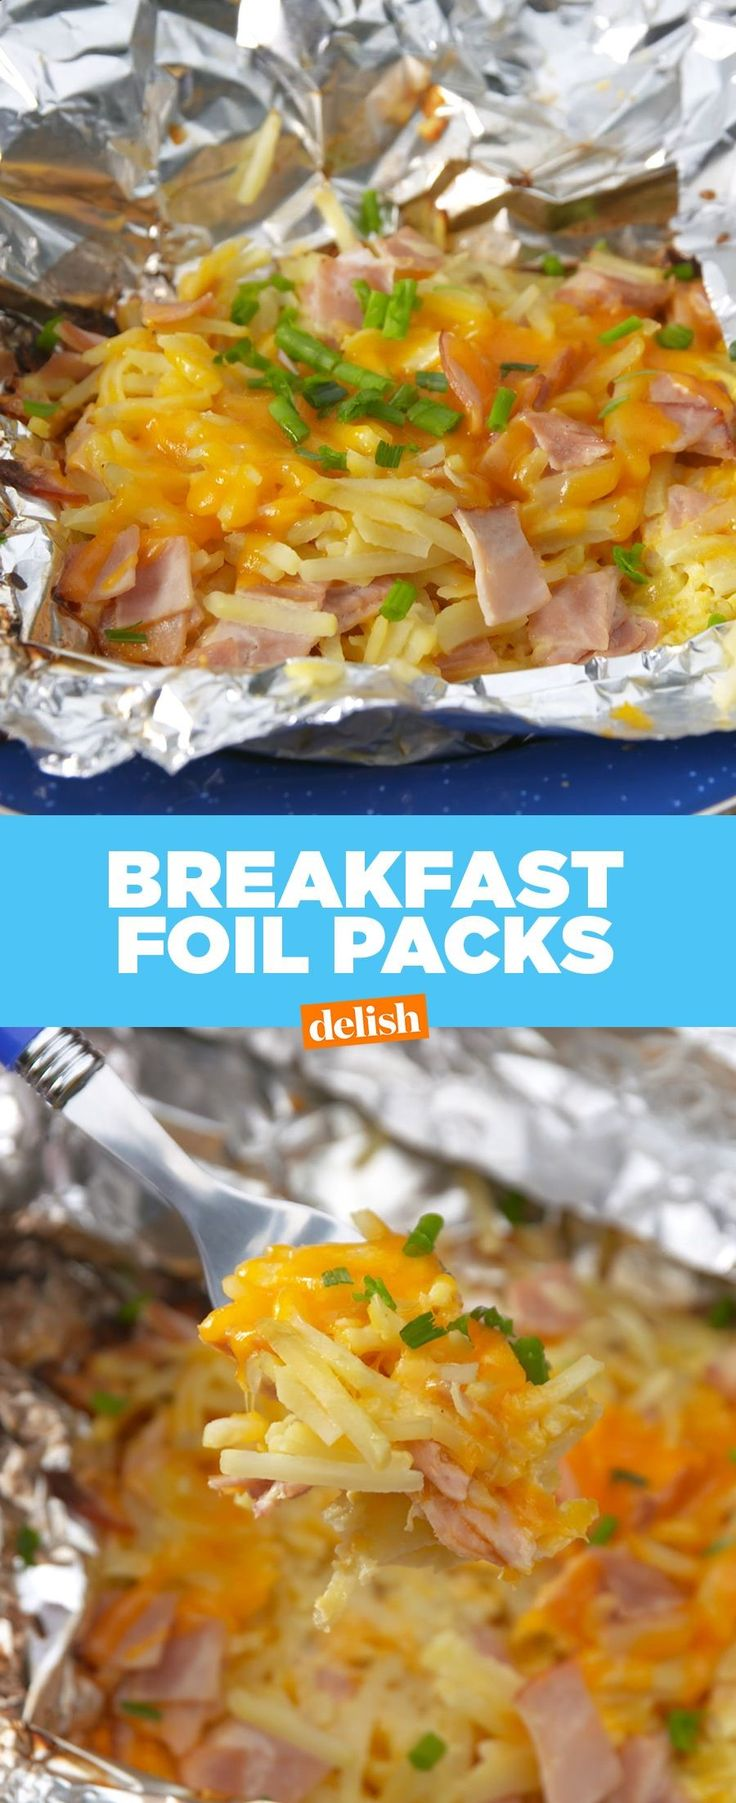 Even when youre roughin it ... you still need brunch. Get the recipe from Delish.com.(Camping Food Recipes)